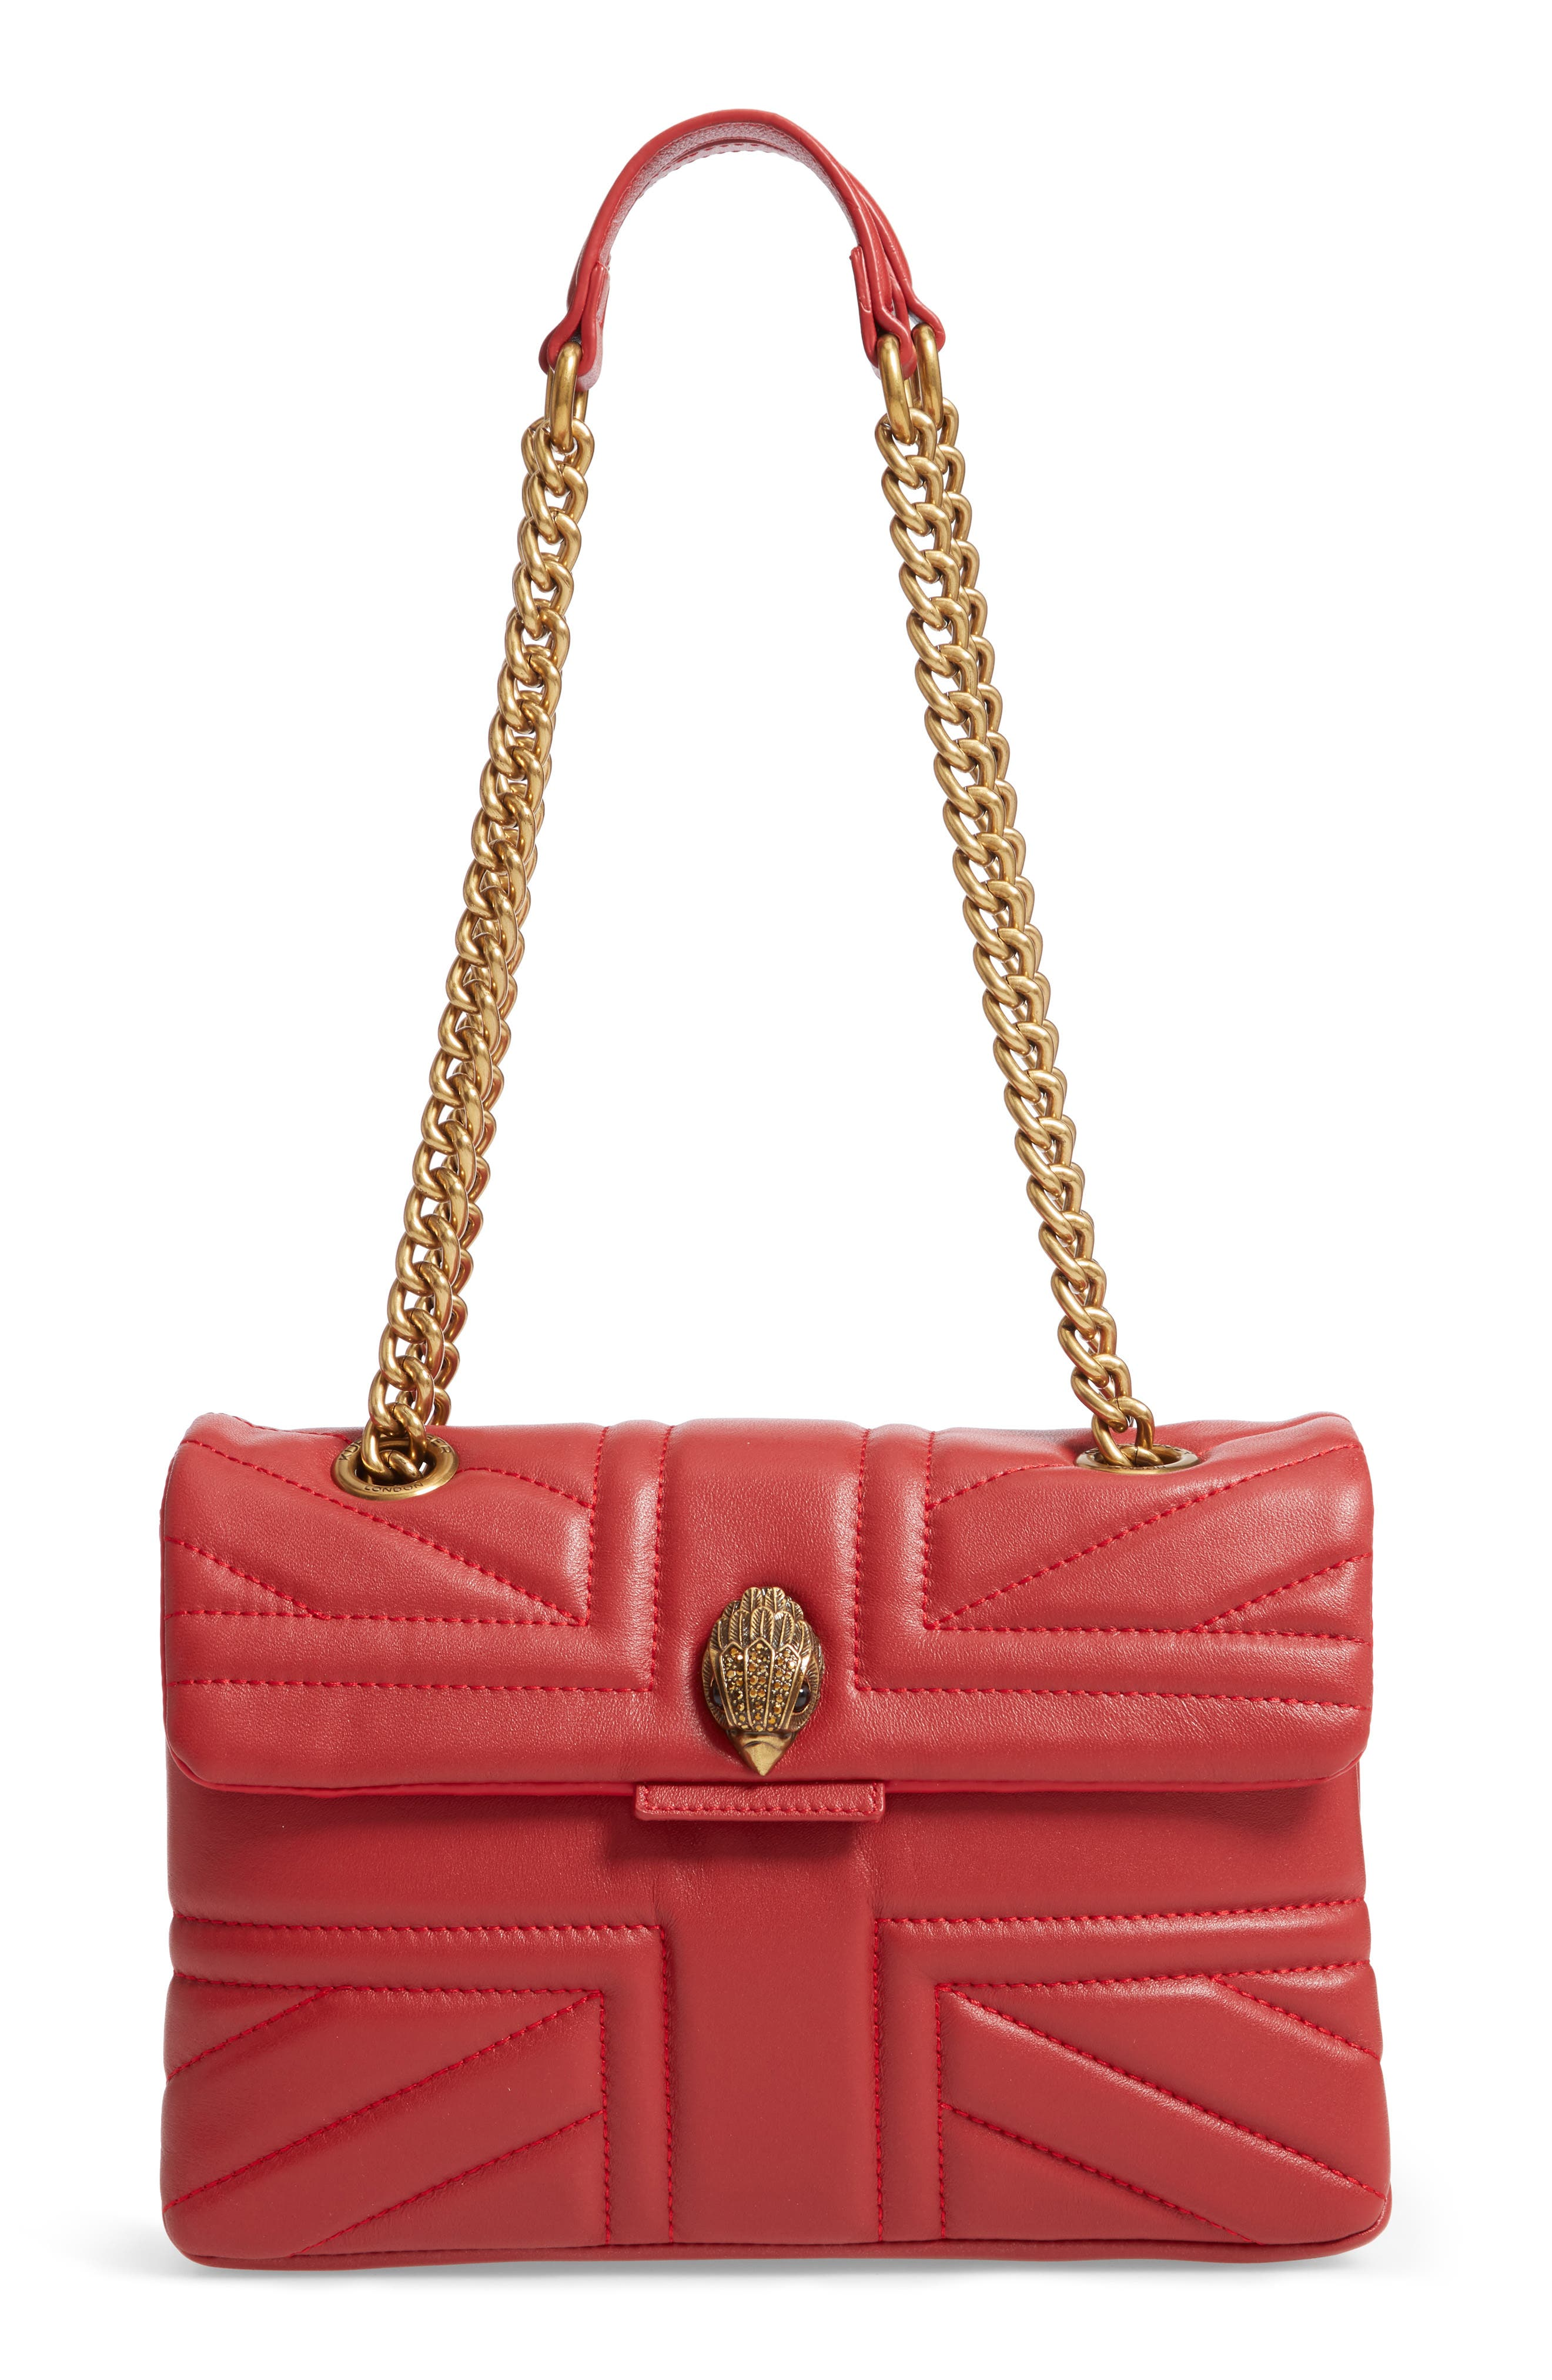 Kensington Union Jack Leather Crossbody Bag - Red